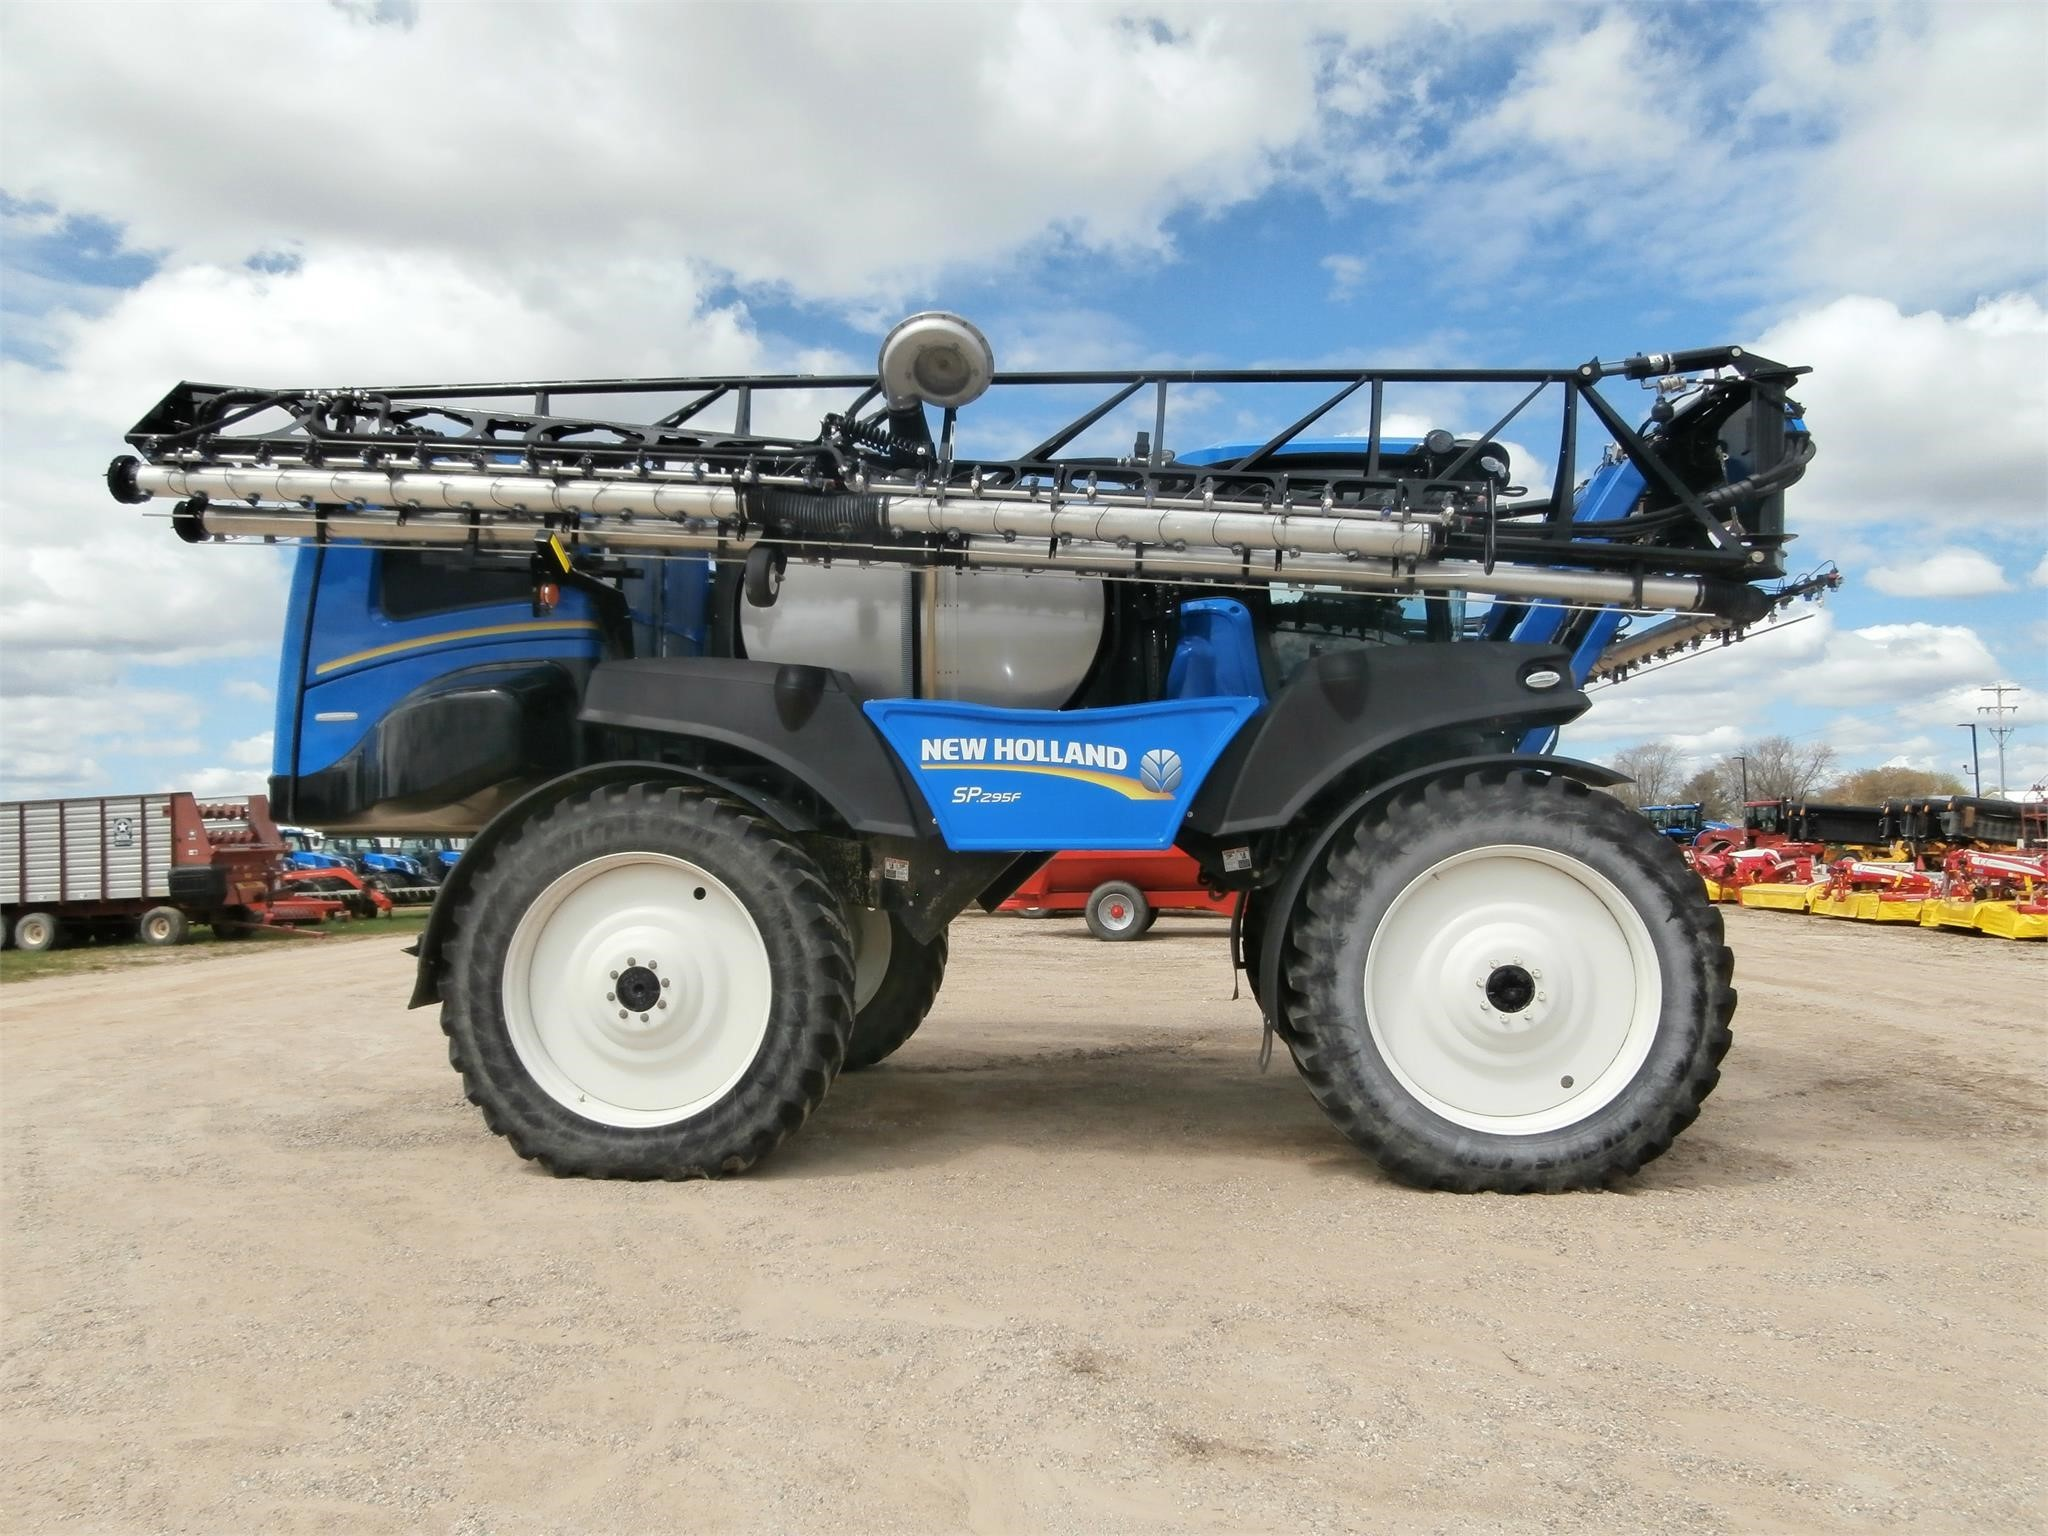 2016 New Holland SP.295F Self-Propelled Sprayer